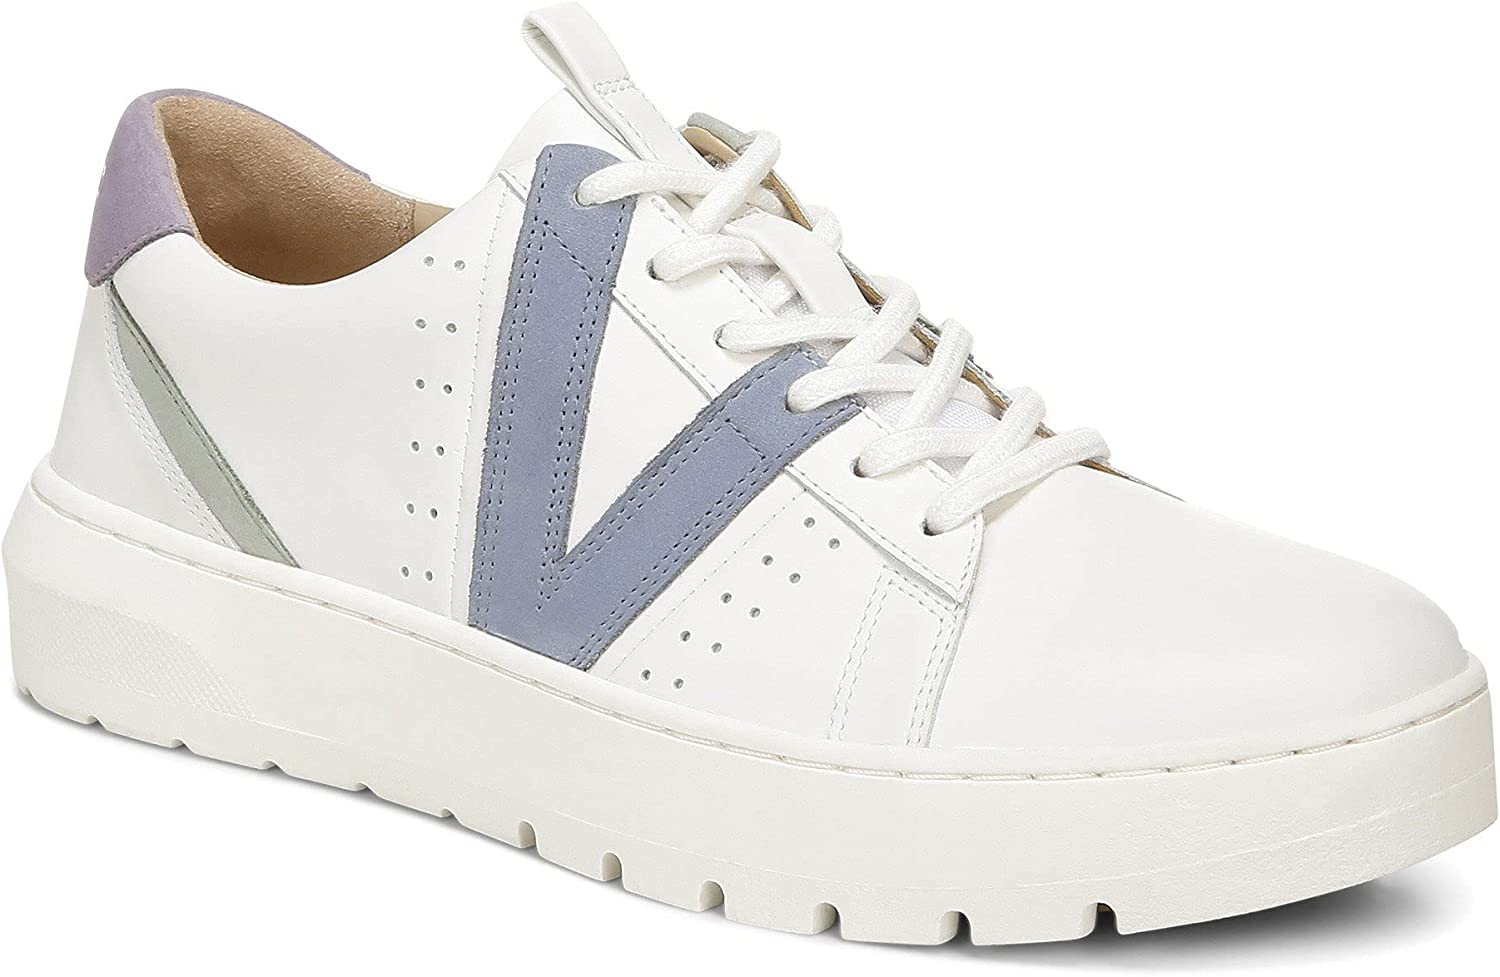 Vionic Women's Curran Simasa Manufacturer direct Challenge the lowest price of Japan ☆ delivery Lace-Up Supportive Casual Sneaker-